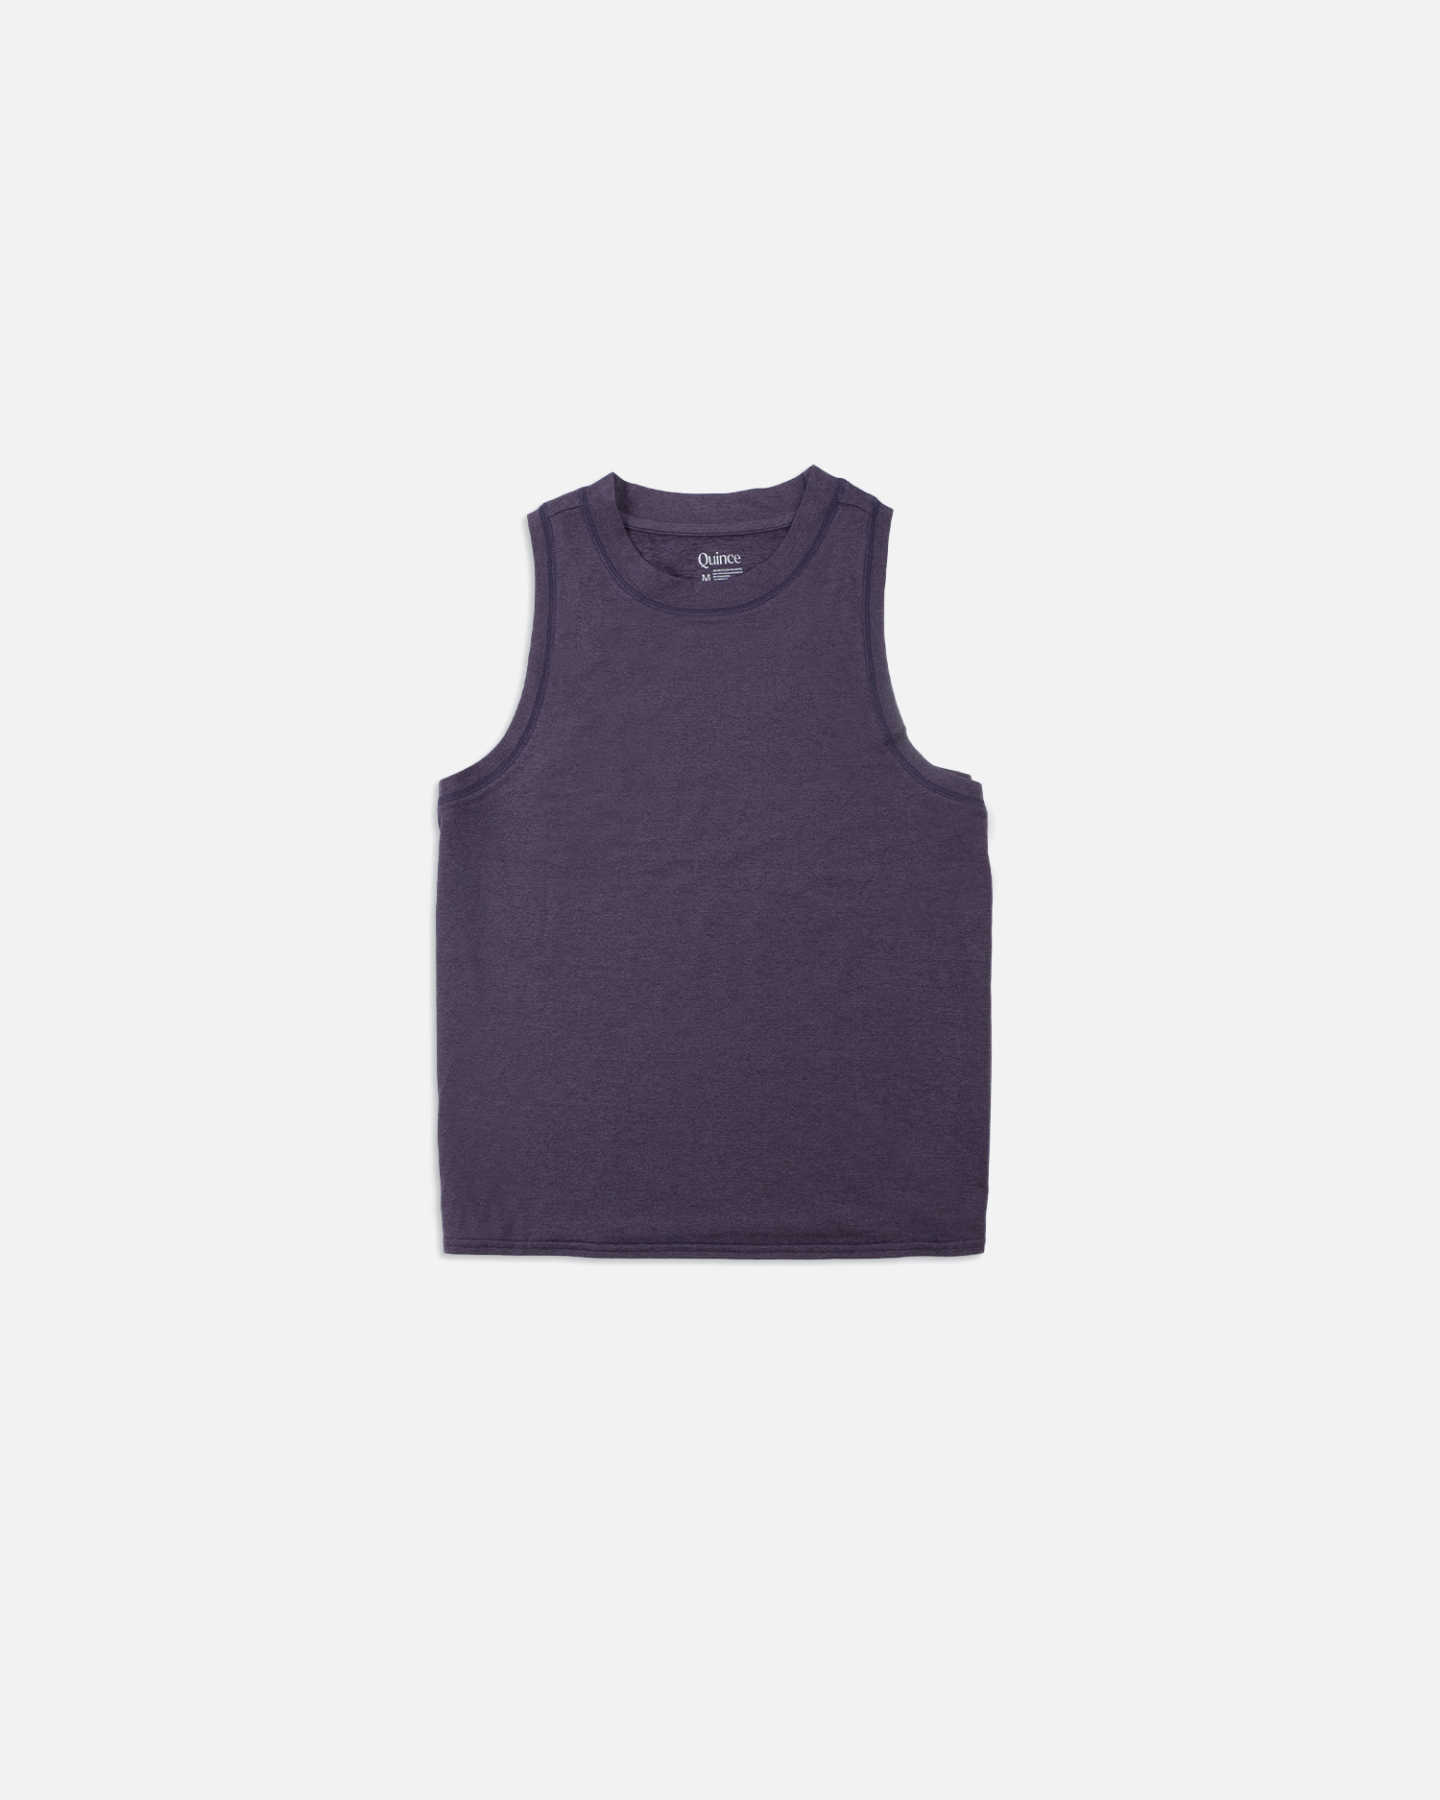 Flowknit Ultra-Soft Performance Tank - Royal Purple